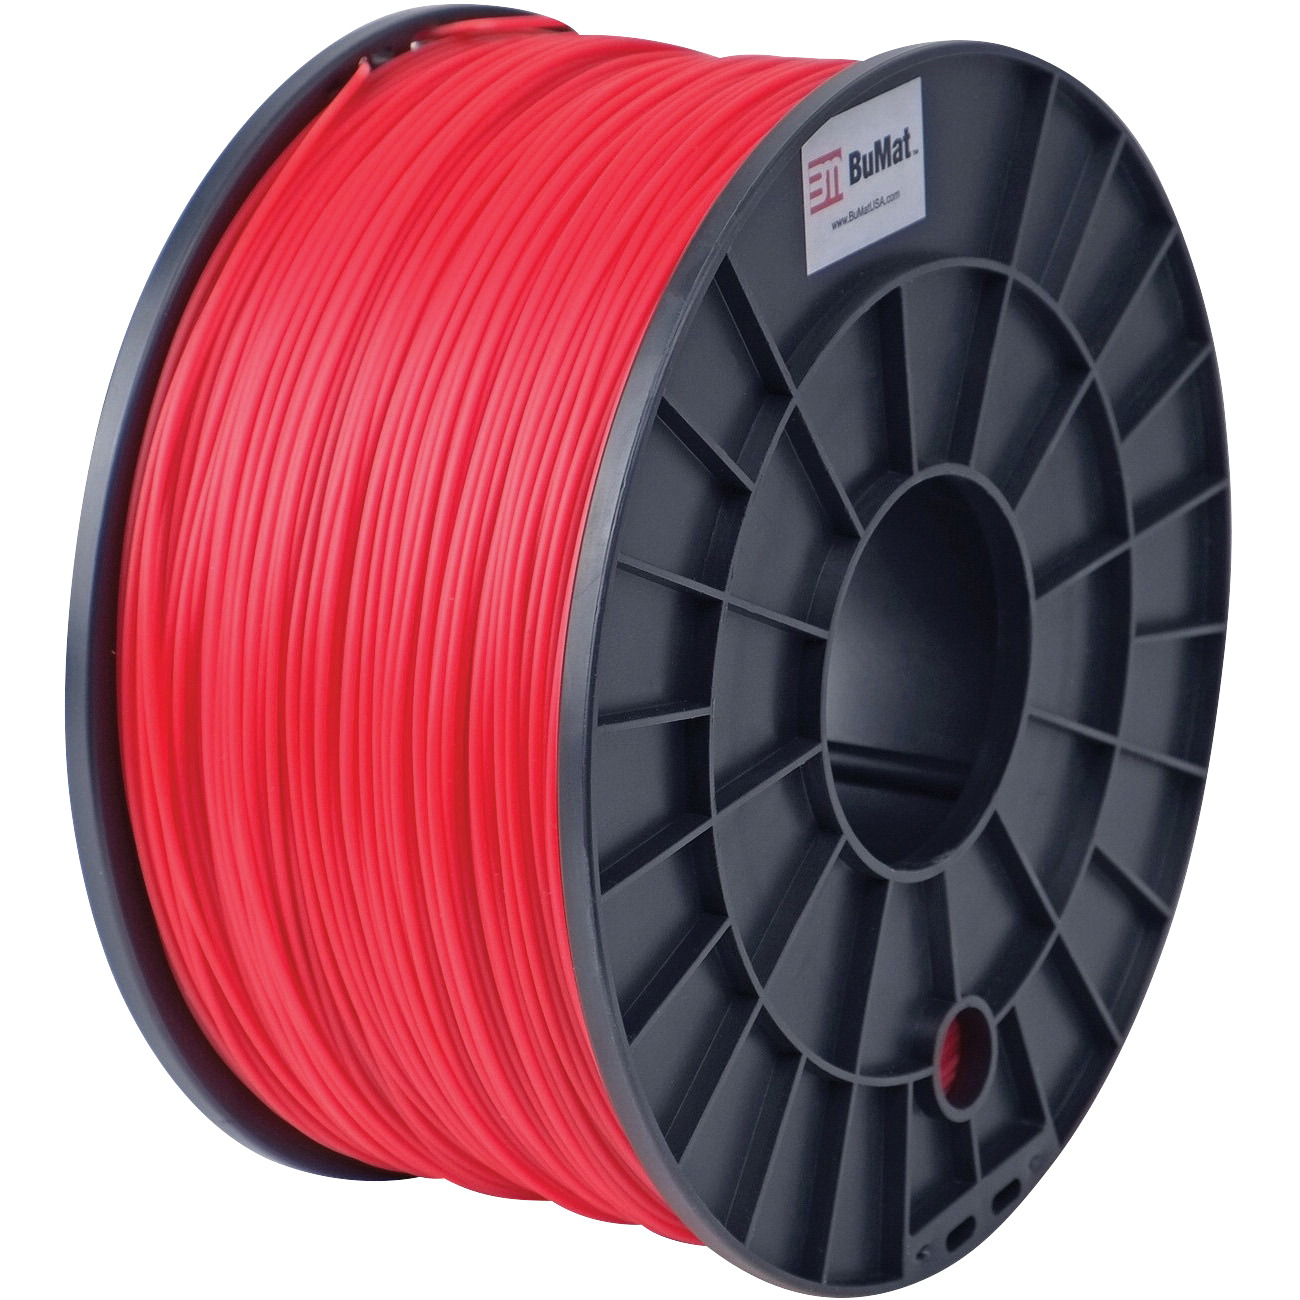 BuMat Filament Cartridge, 1.75 mm, PLA, Red, For Use With 3D Printer Nozzles